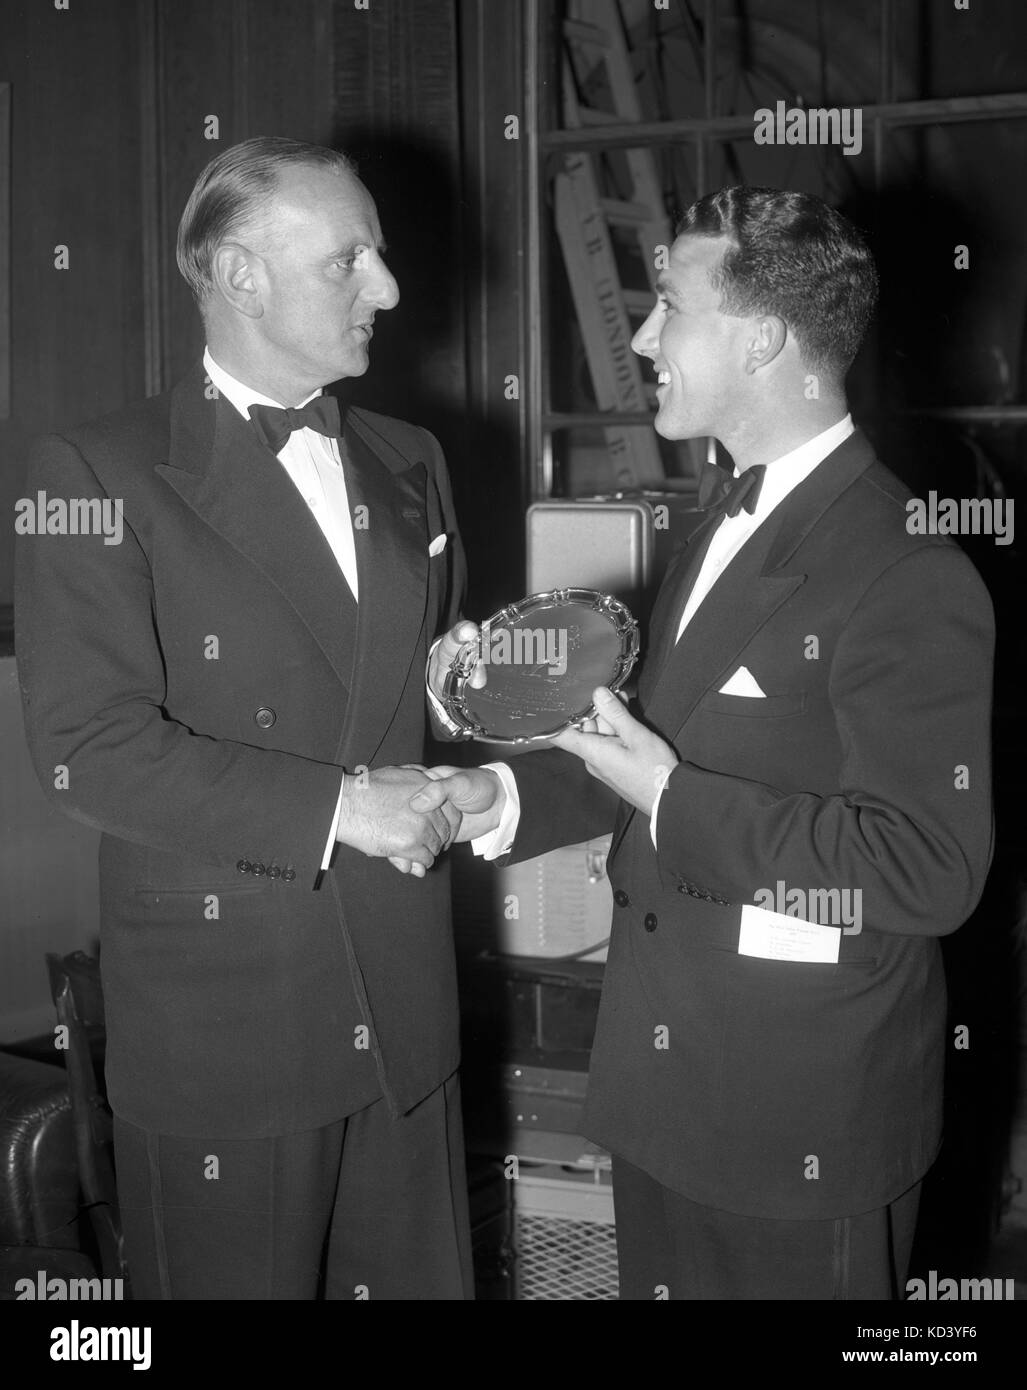 Brian Taylor (r), 24-year-old Essex batsman and wicketkeeper, receives the Young Cricketer of the Year trophy from - Stock Image